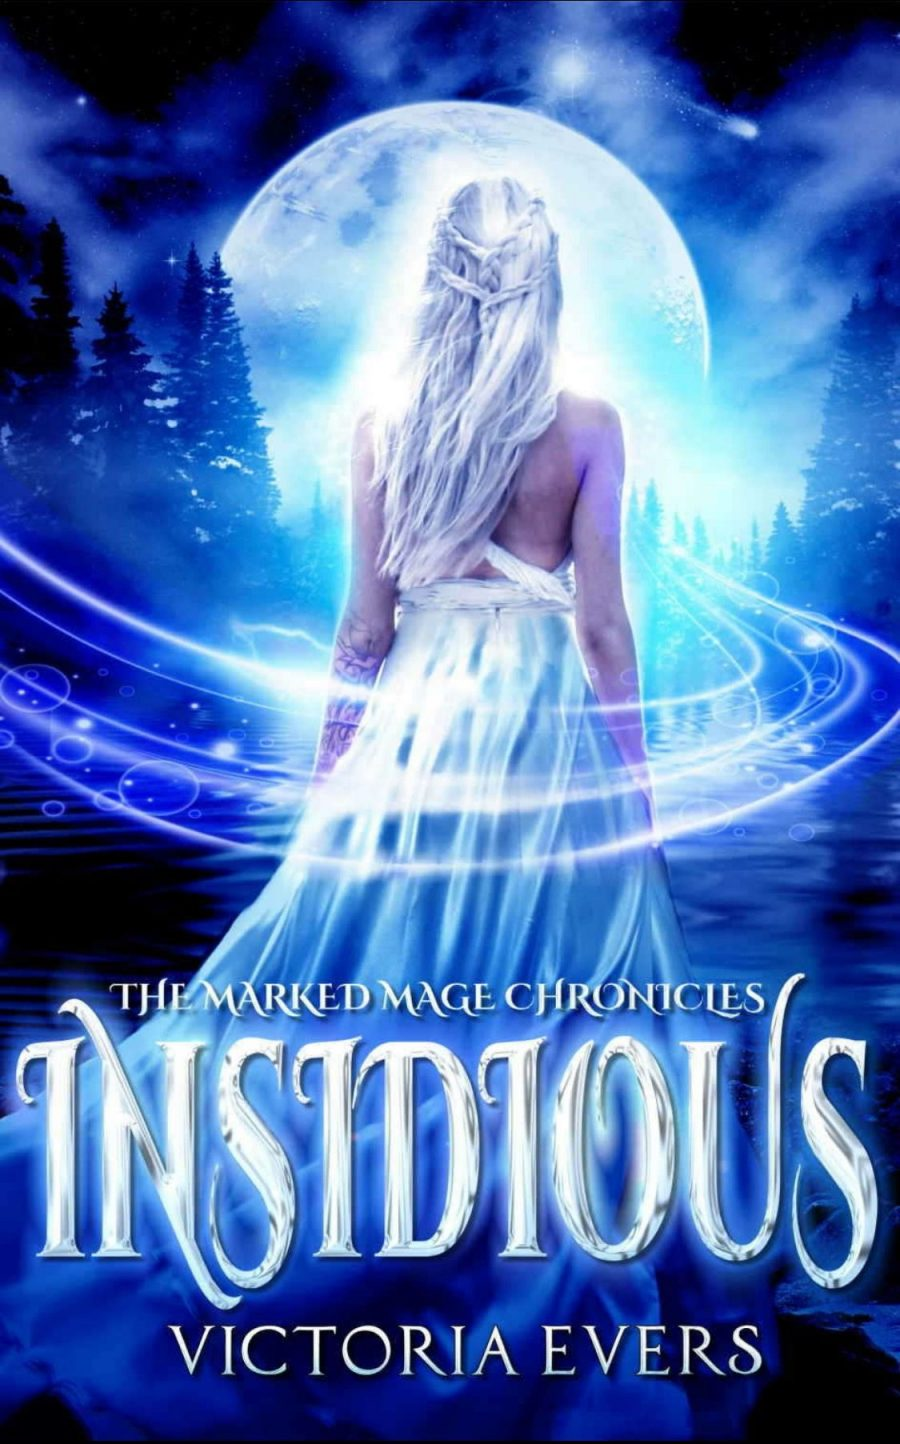 Insidious *The Marked Mage Chronicles - Book 1* by Victoria Evers - A Book Review. #BookReview #5Star #UrbanFantasyRomance #UF #YA #MustRead #BooksAndBlurbs